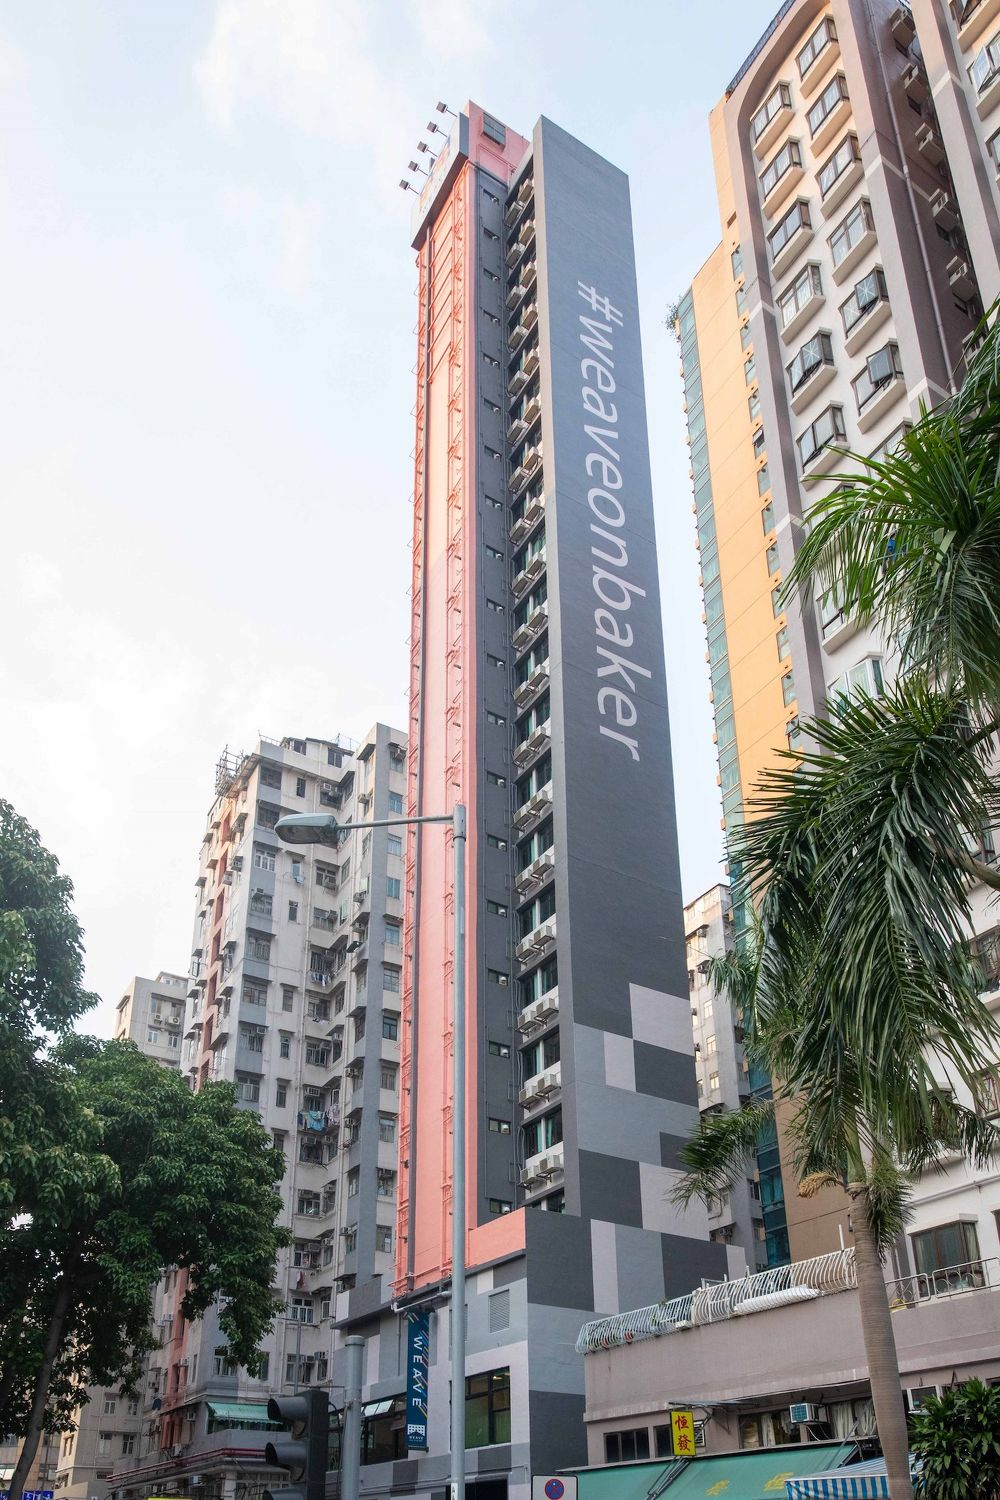 EDGEPROP SINGAPORE - The exterior of Weave on Baker, which is a seven-minute walk to the Hung Hom MTR station (Photo: Weave Co-Living) - EDGEPROP SINGAPORE